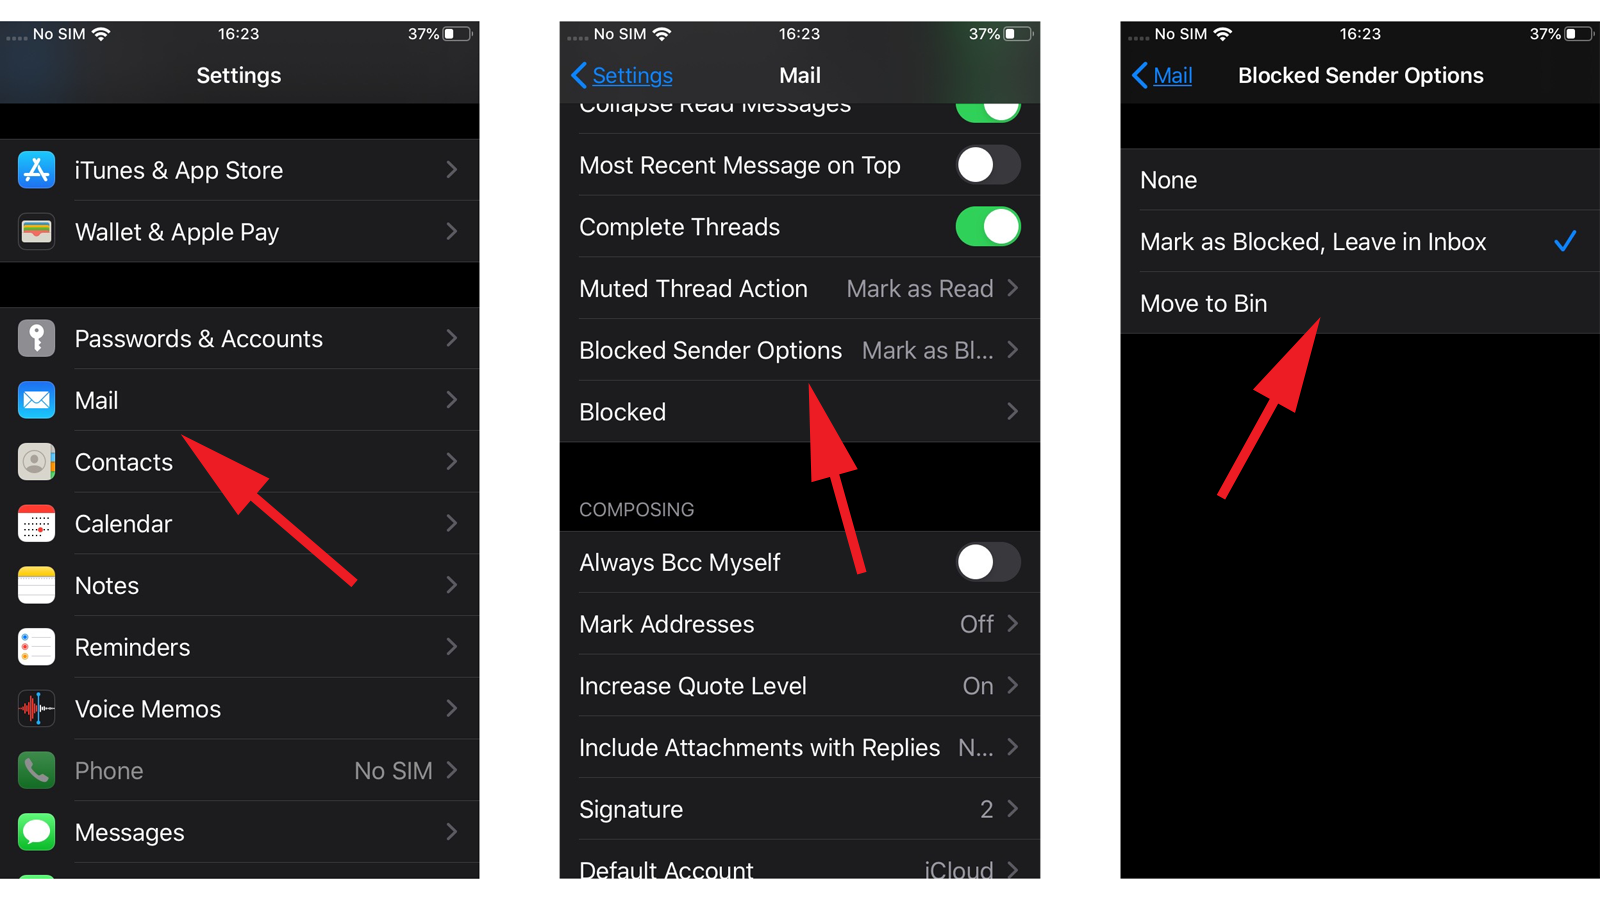 Unsubscribe from junk email in iOS 13: blocked senders options